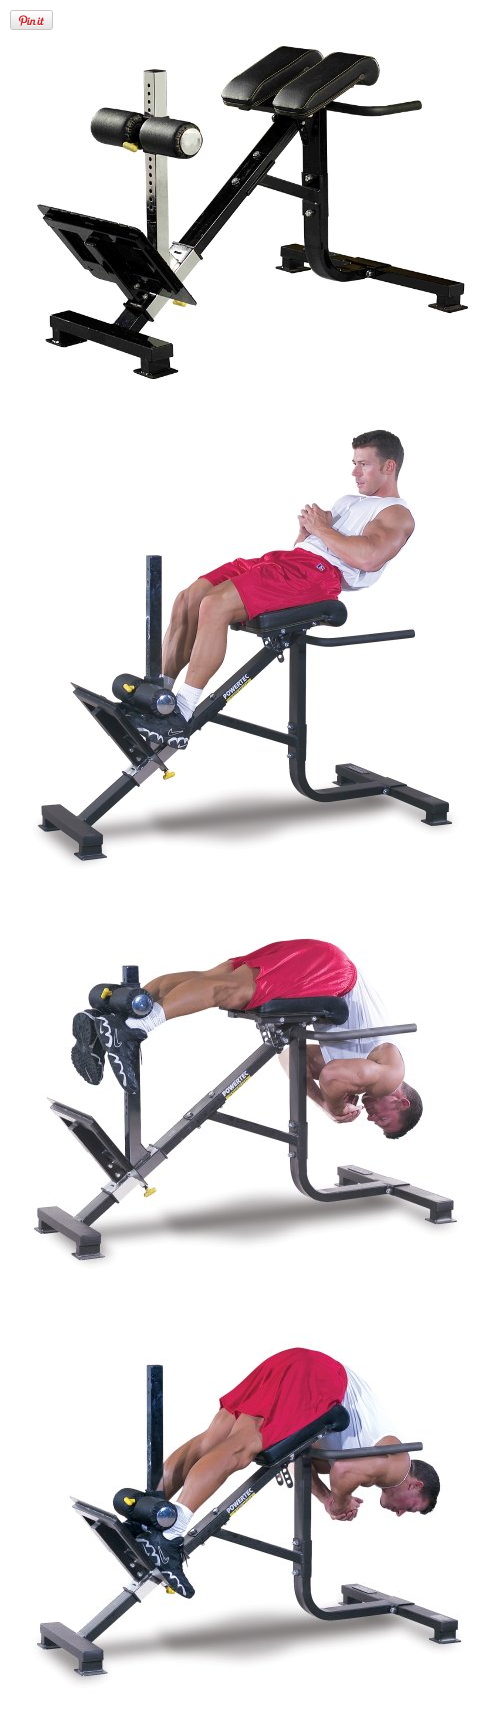 Powertec Fitness P-HC10 45-Degree Dual Hyperextension / Roman Chair The Powertec  sc 1 th 259 & Powertec Fitness P-HC10 45-Degree Dual Hyperextension / Roman Chair ...